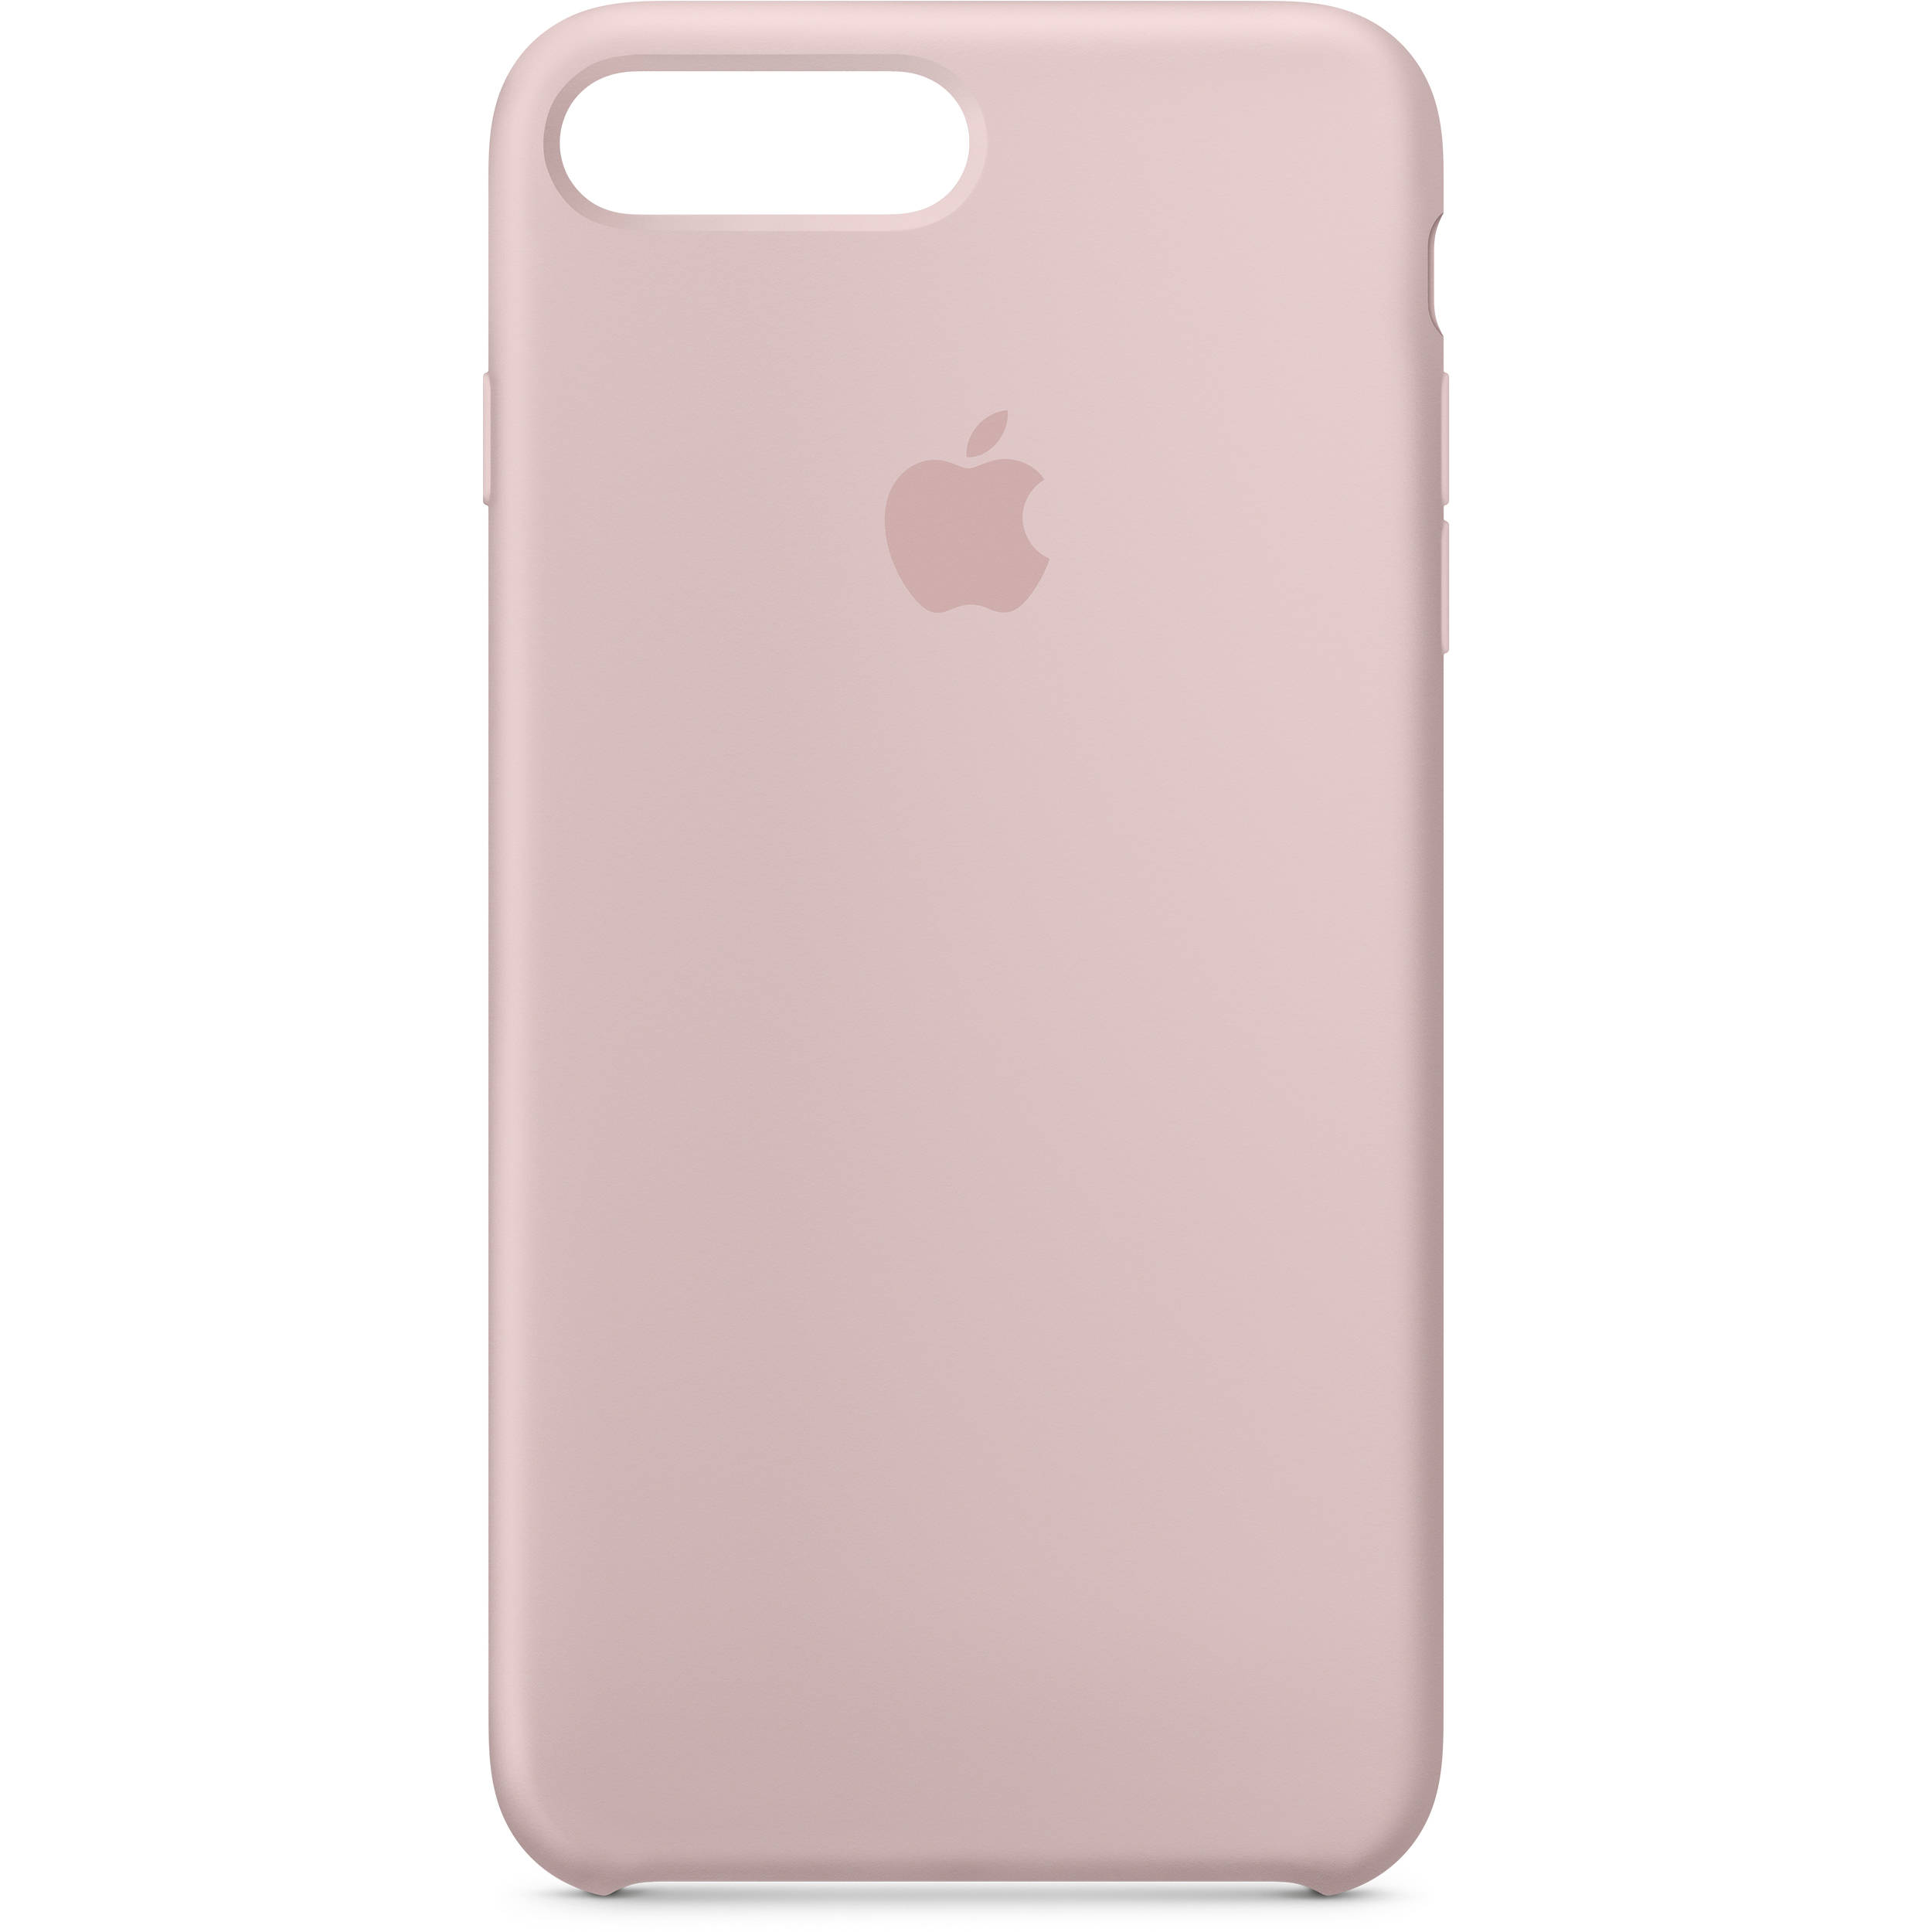 1e6897a7ab Apple iPhone 7 Plus/8 Plus Silicone Case (Pink Sand) MQH22ZM/A